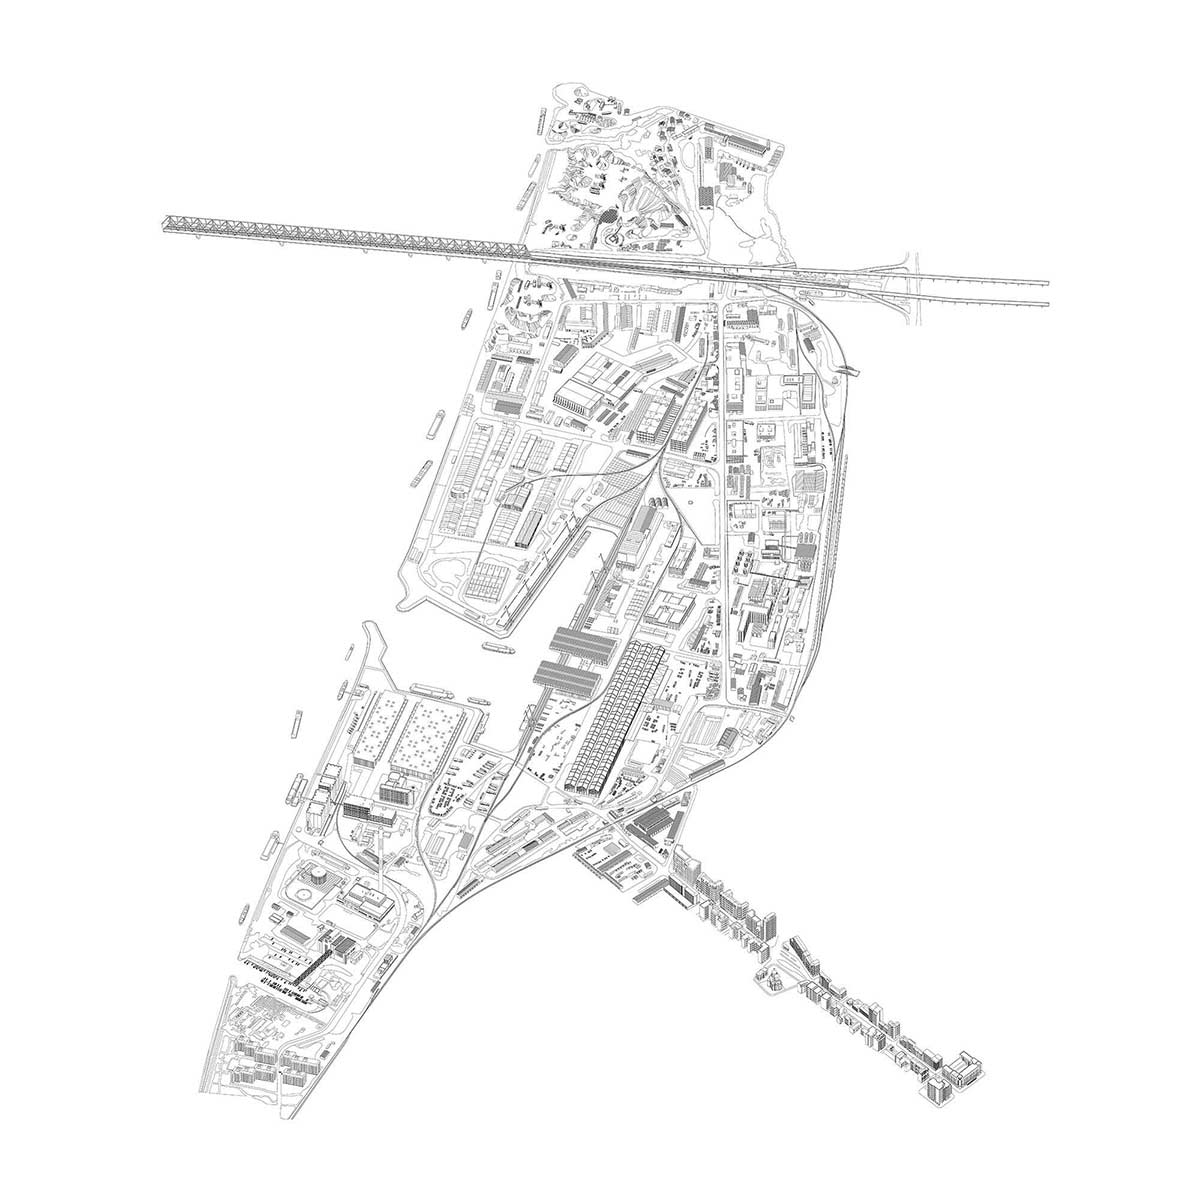 003 Ten Lager Eugster Belgrade Harbour Site Drawing